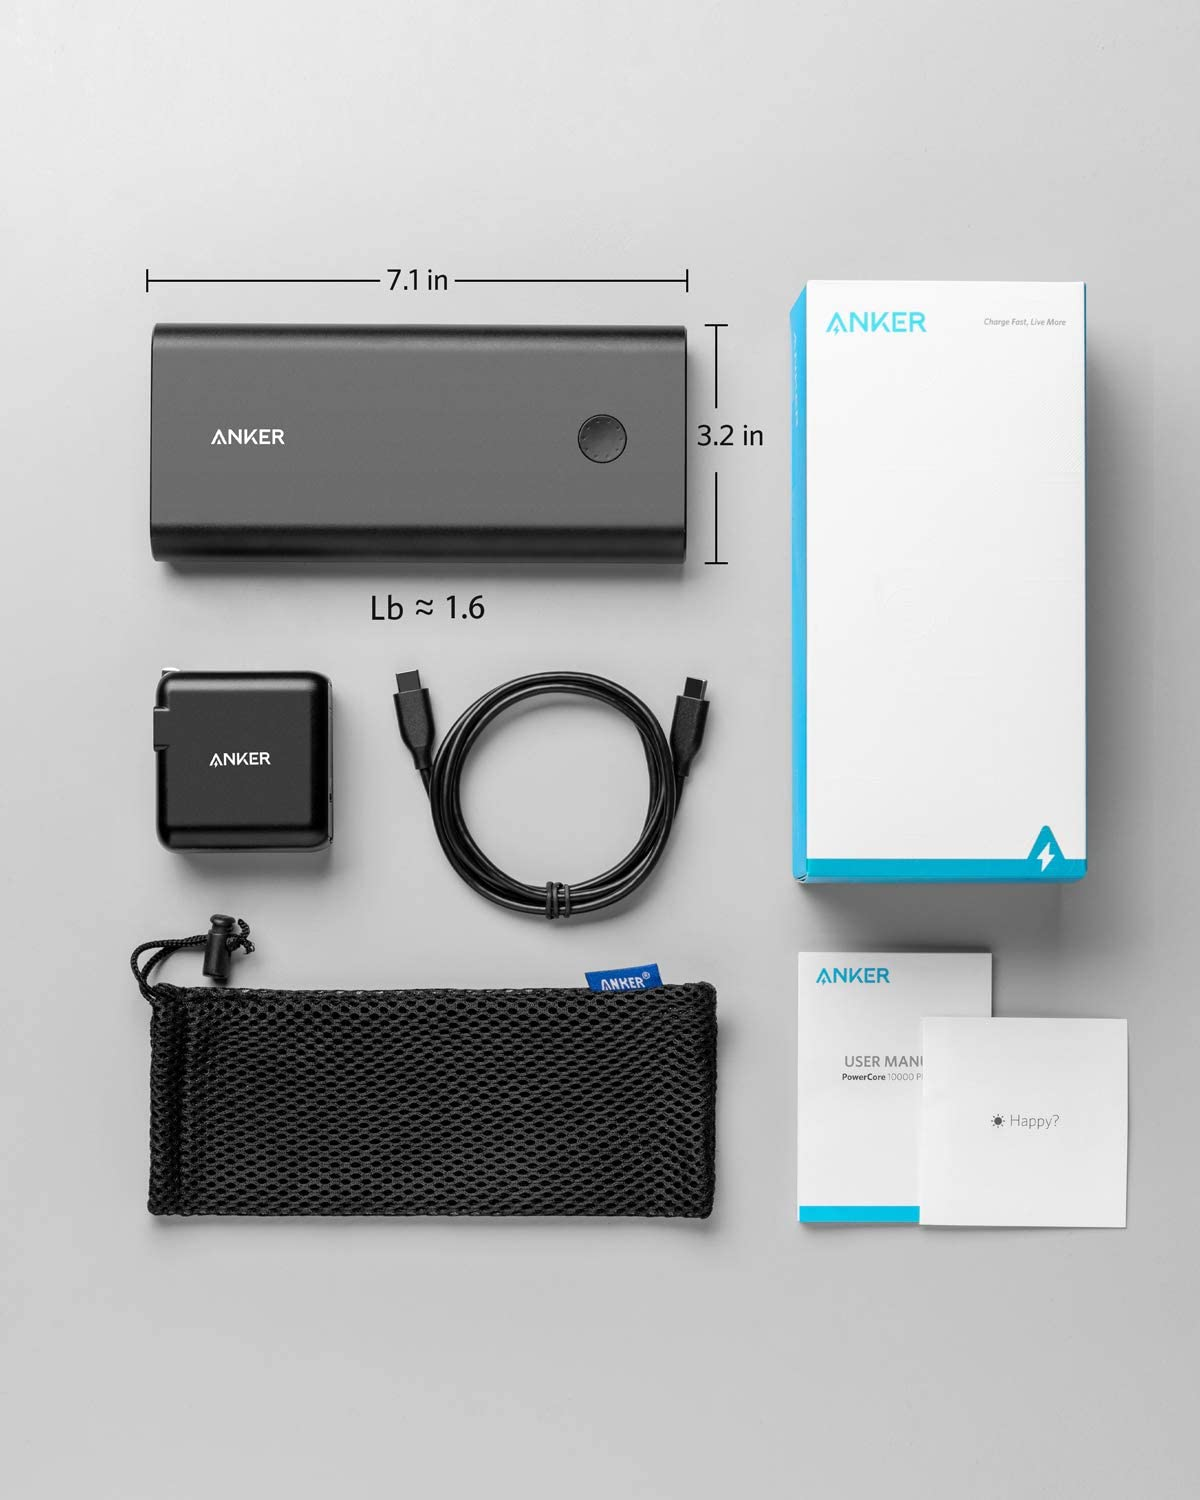 Anker PowerCore+ 26800mAh PD 45W with 60W PD Charger, Power Delivery Portable Charger Bundle for USB C MacBook Air/Pro/Dell XPS, iPad Pro 2018, iPhone 12 / Mini / 11/ Pro / XS Max / X / 8, and More